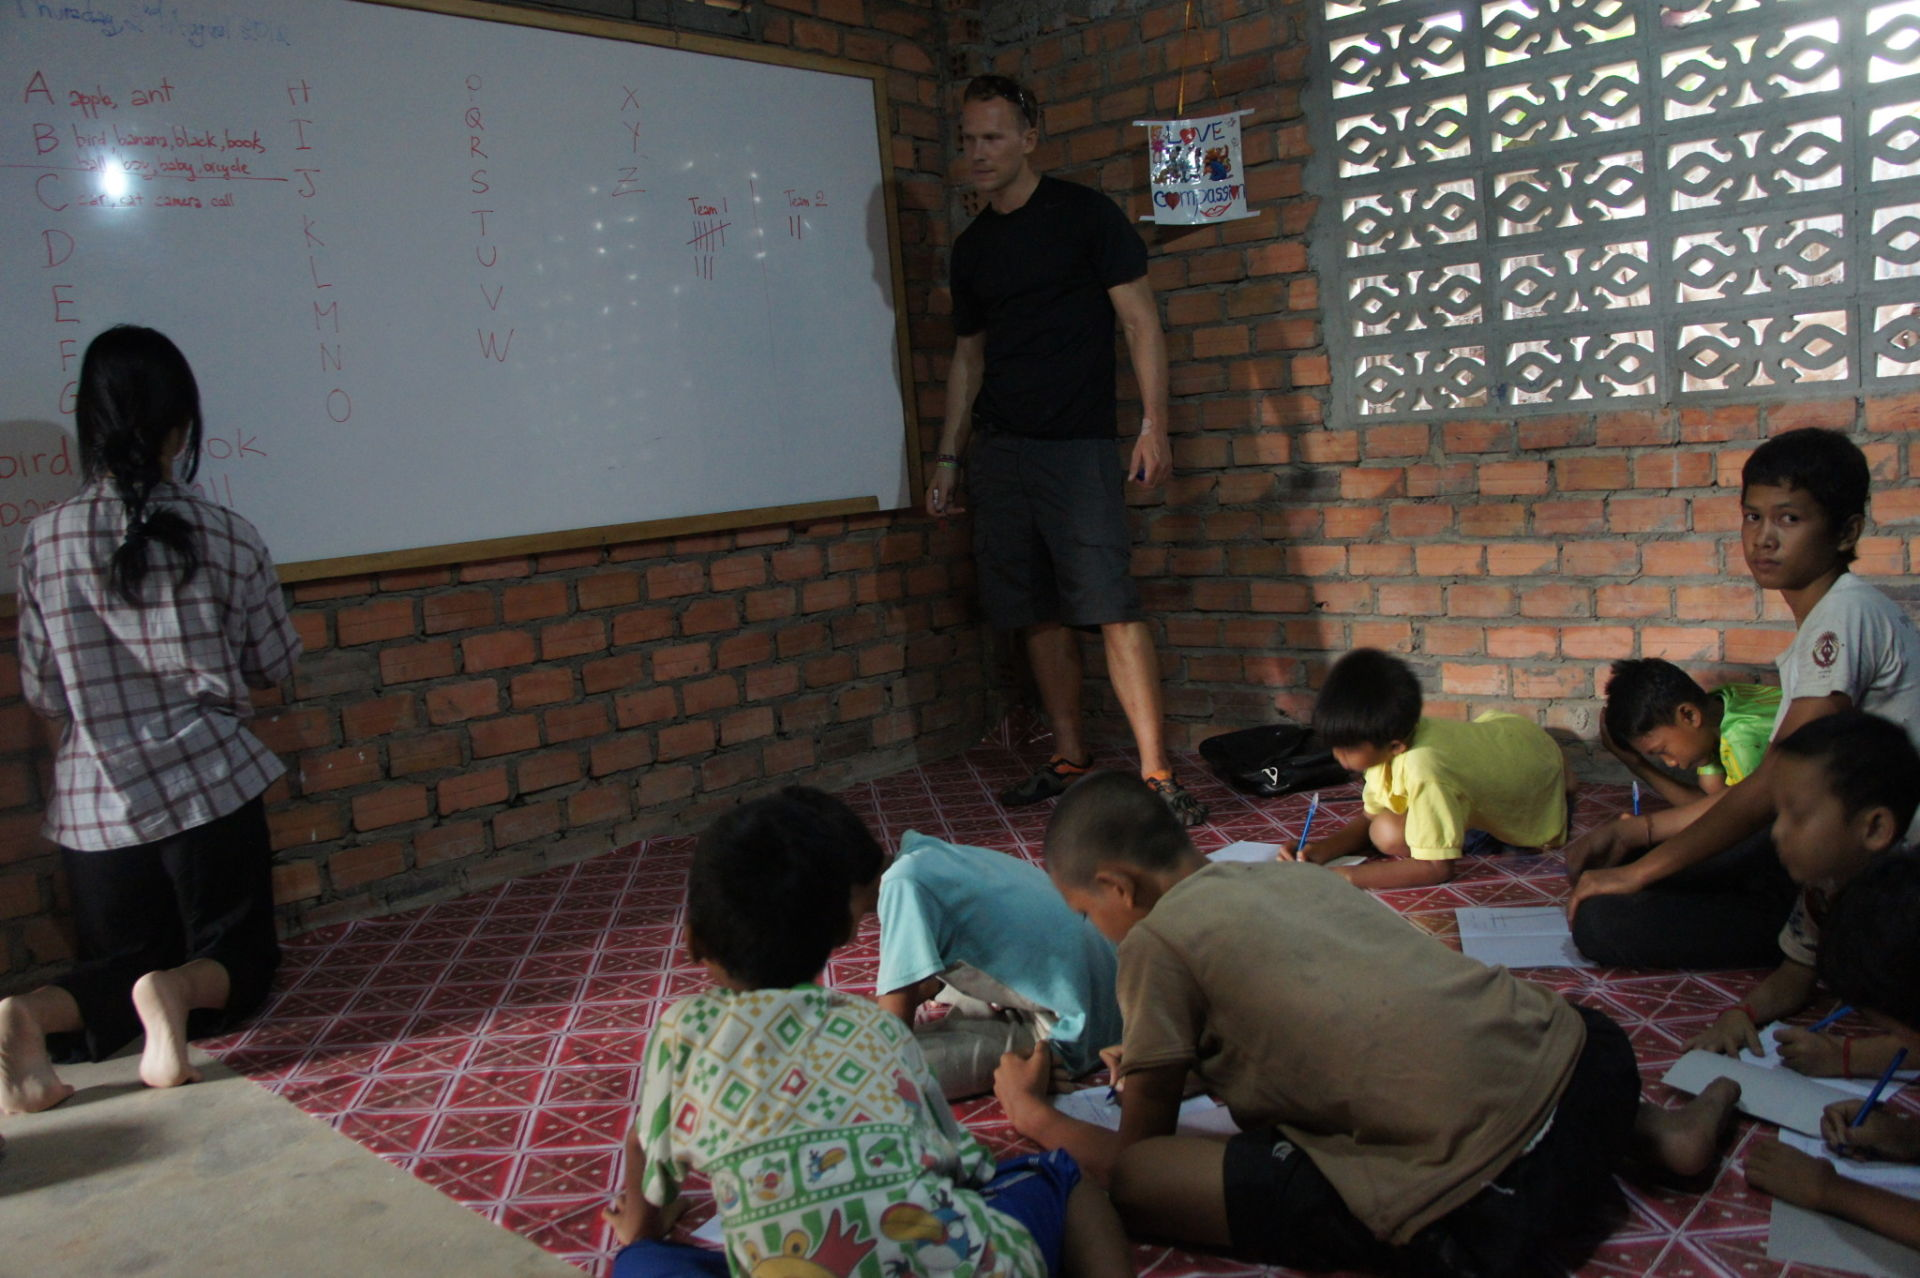 It's not hard to just stop and spend a few hours teaching English, and they love to learn it.